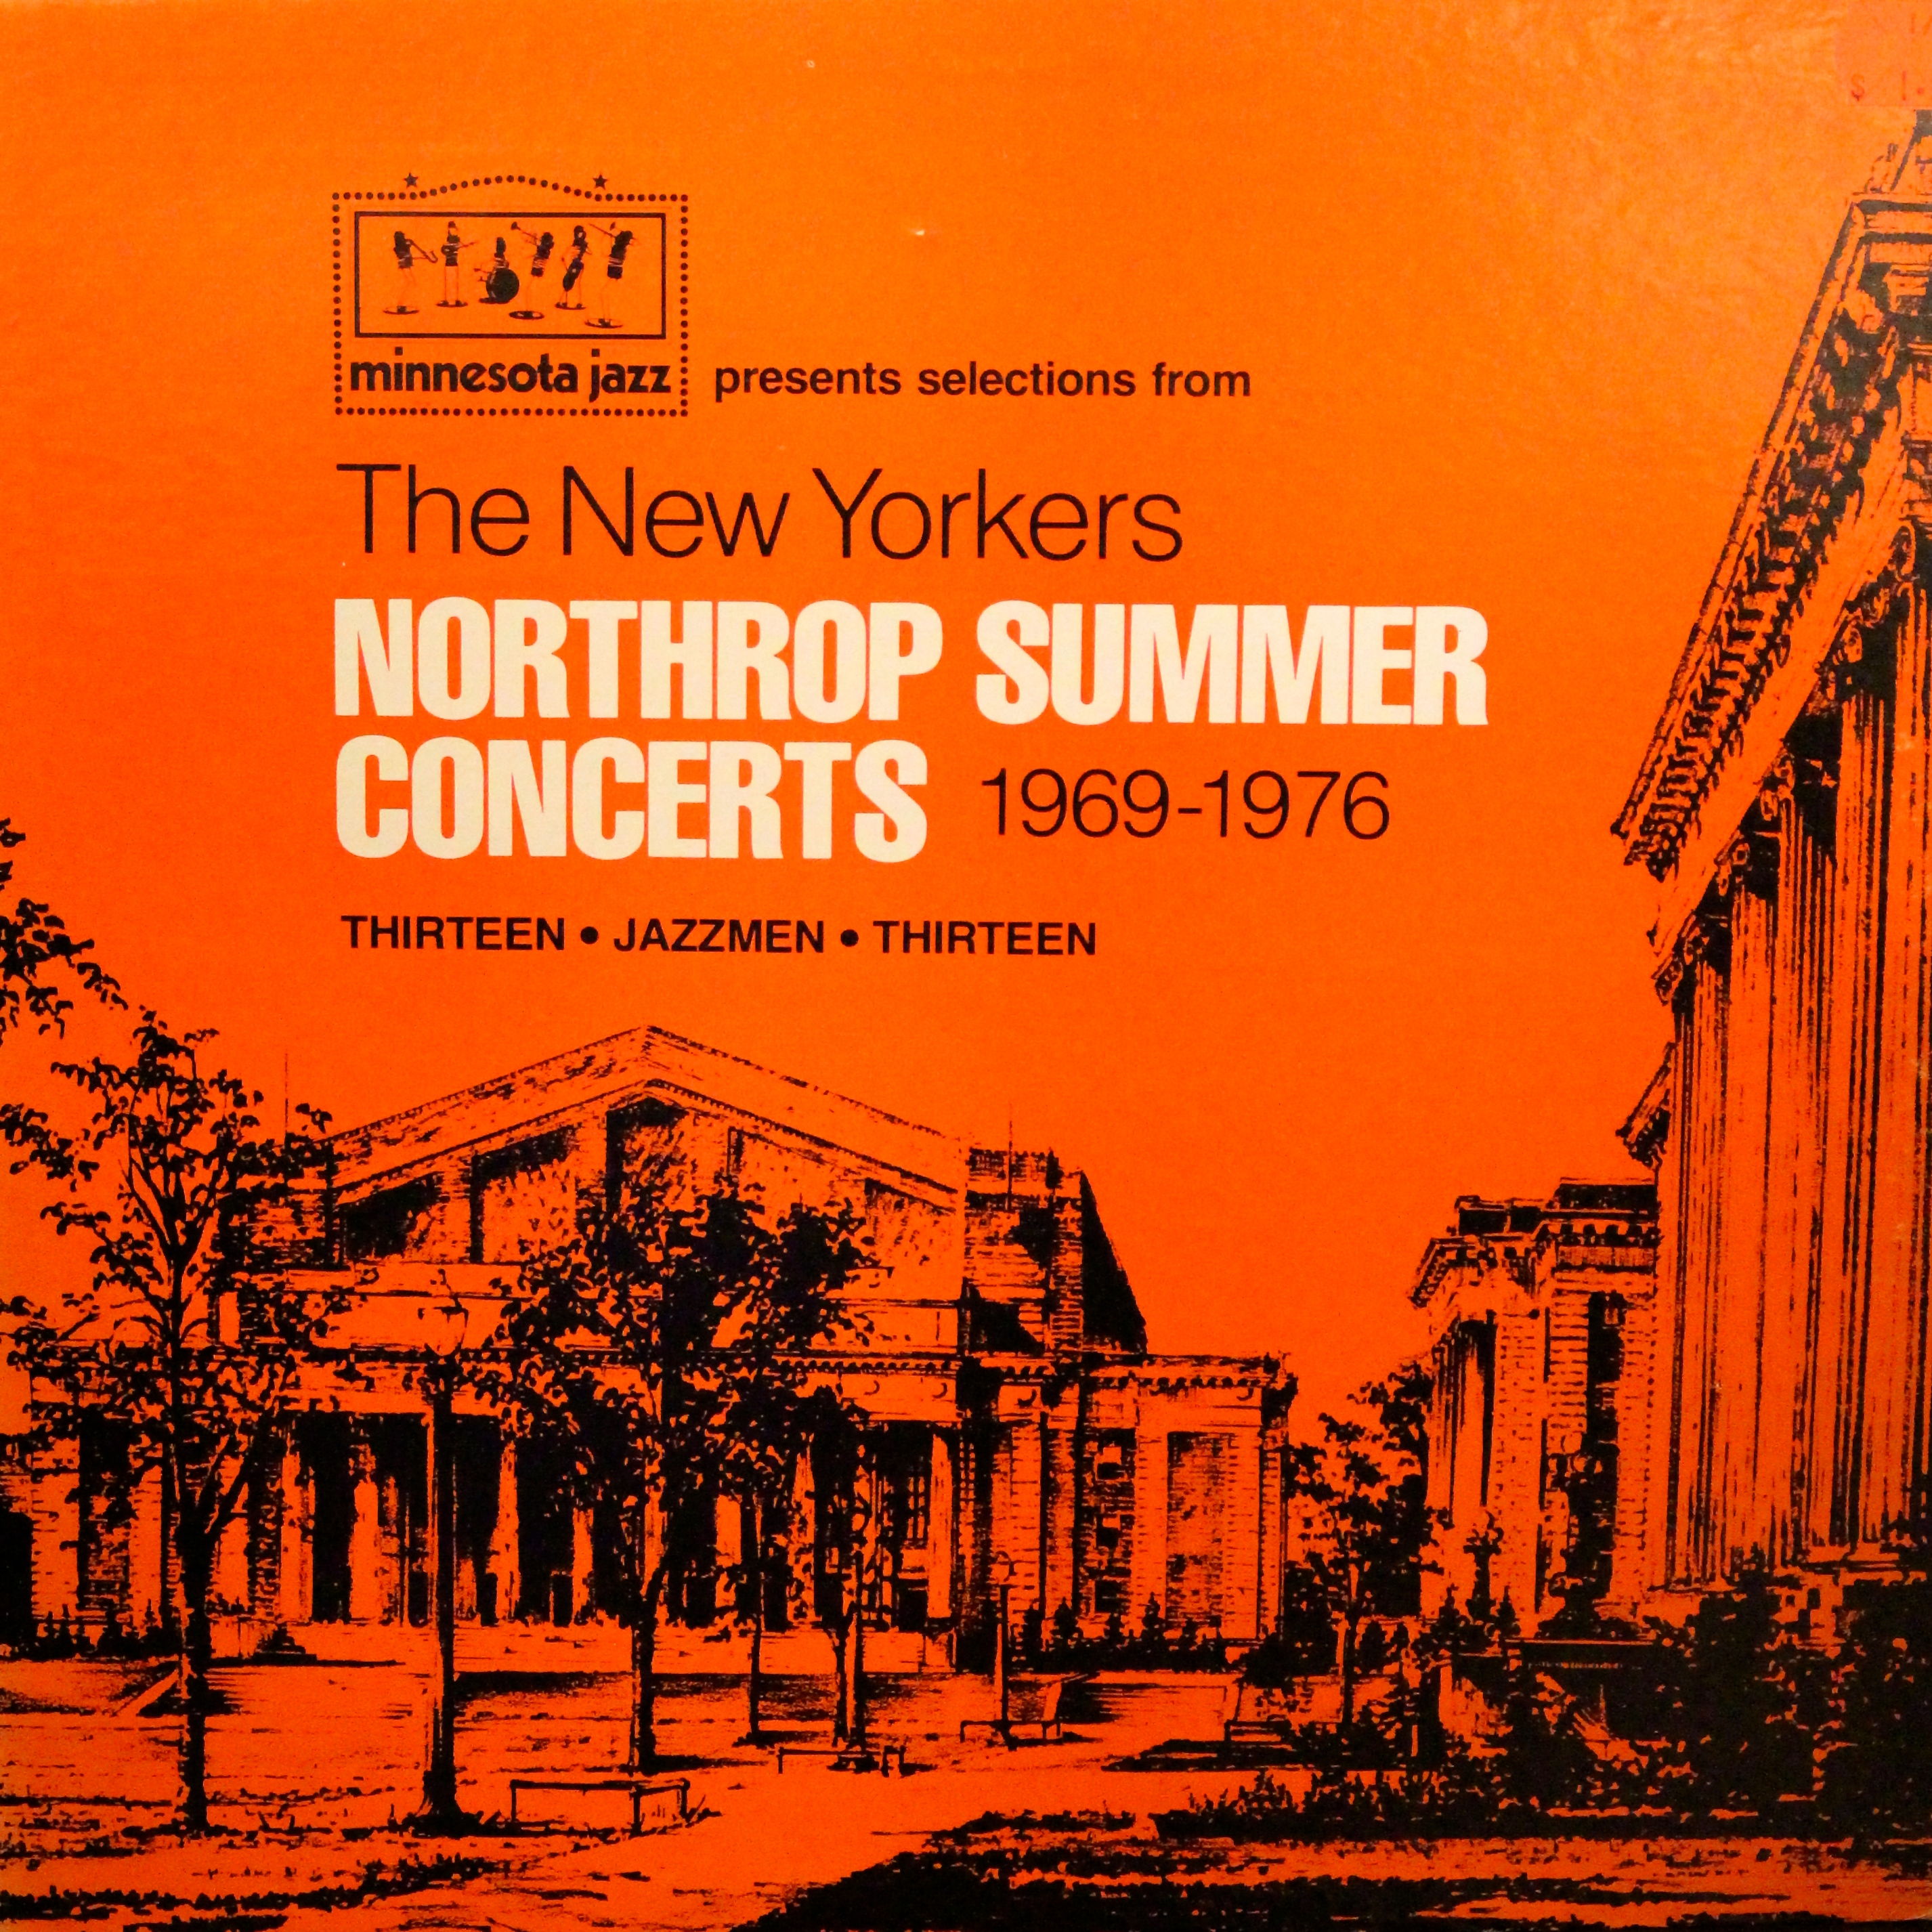 Photo of Northrop Summer Music Album